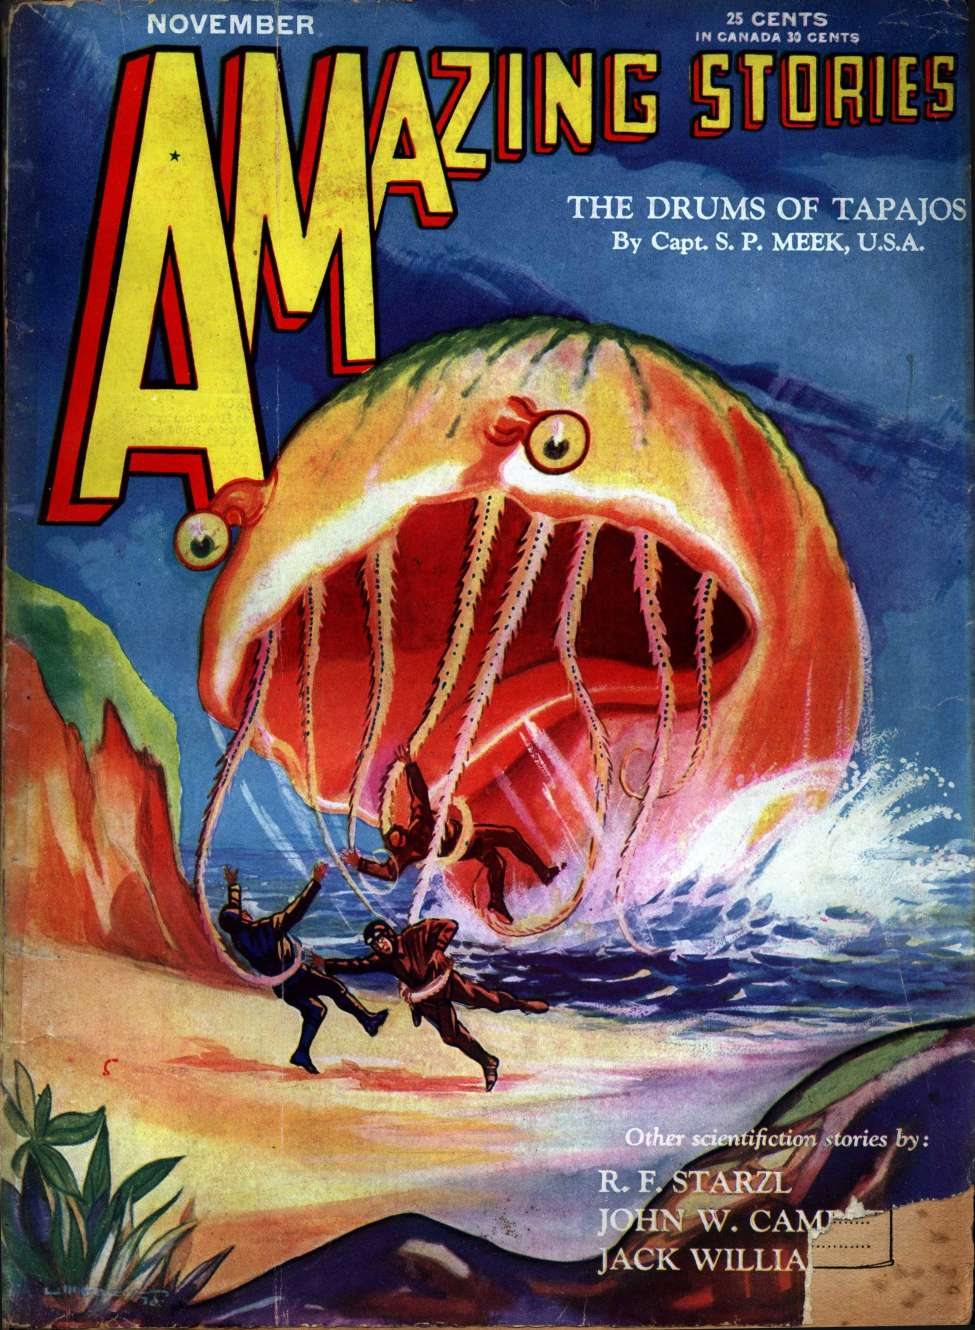 Comic Book Cover For Amazing Stories v05 08 - The Drums of Tapajos - Capt. S. P. Meek